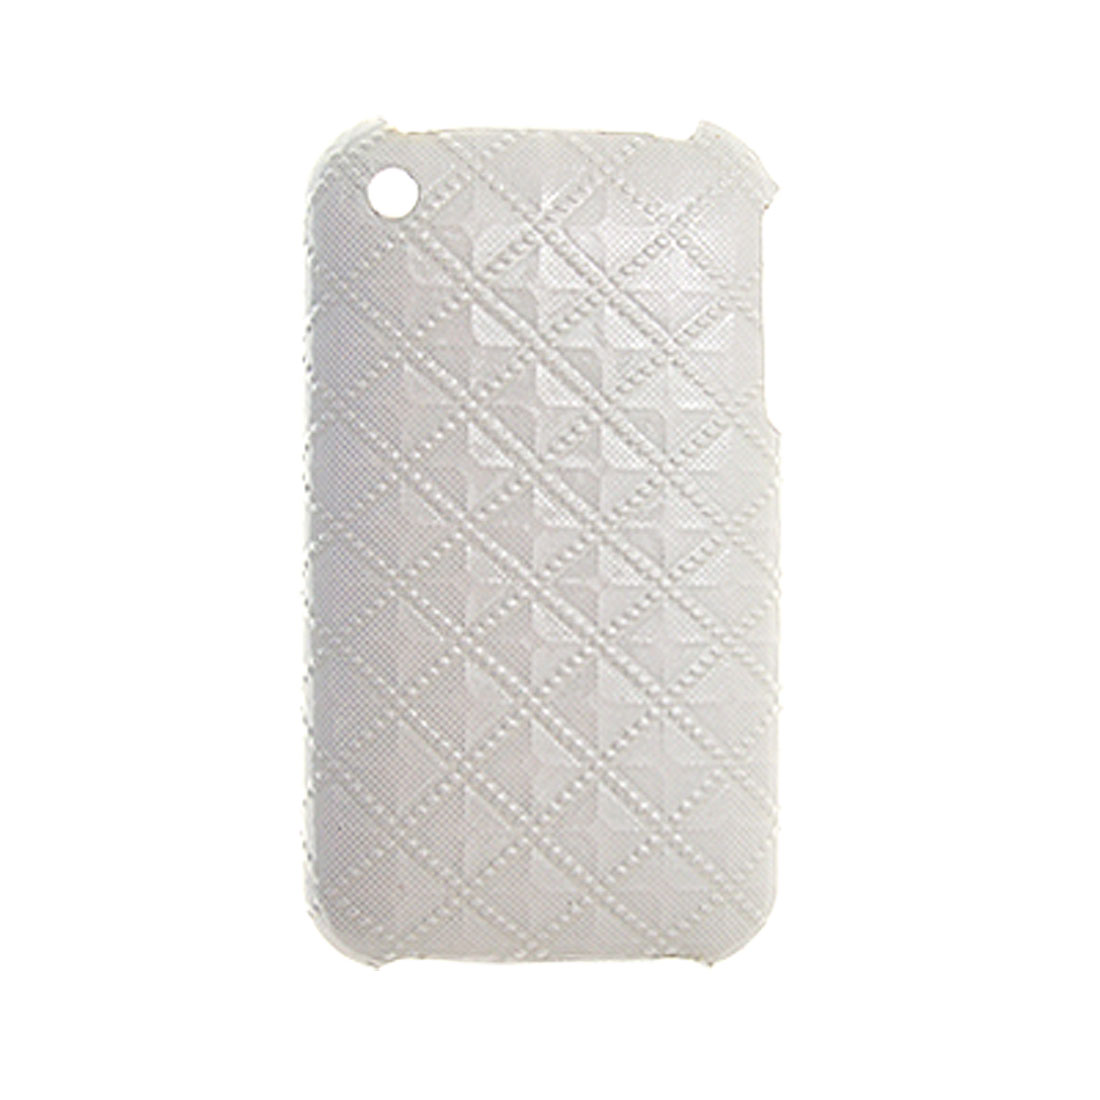 Plastic Lattice Style Back Case Cover for iPhone 3G White